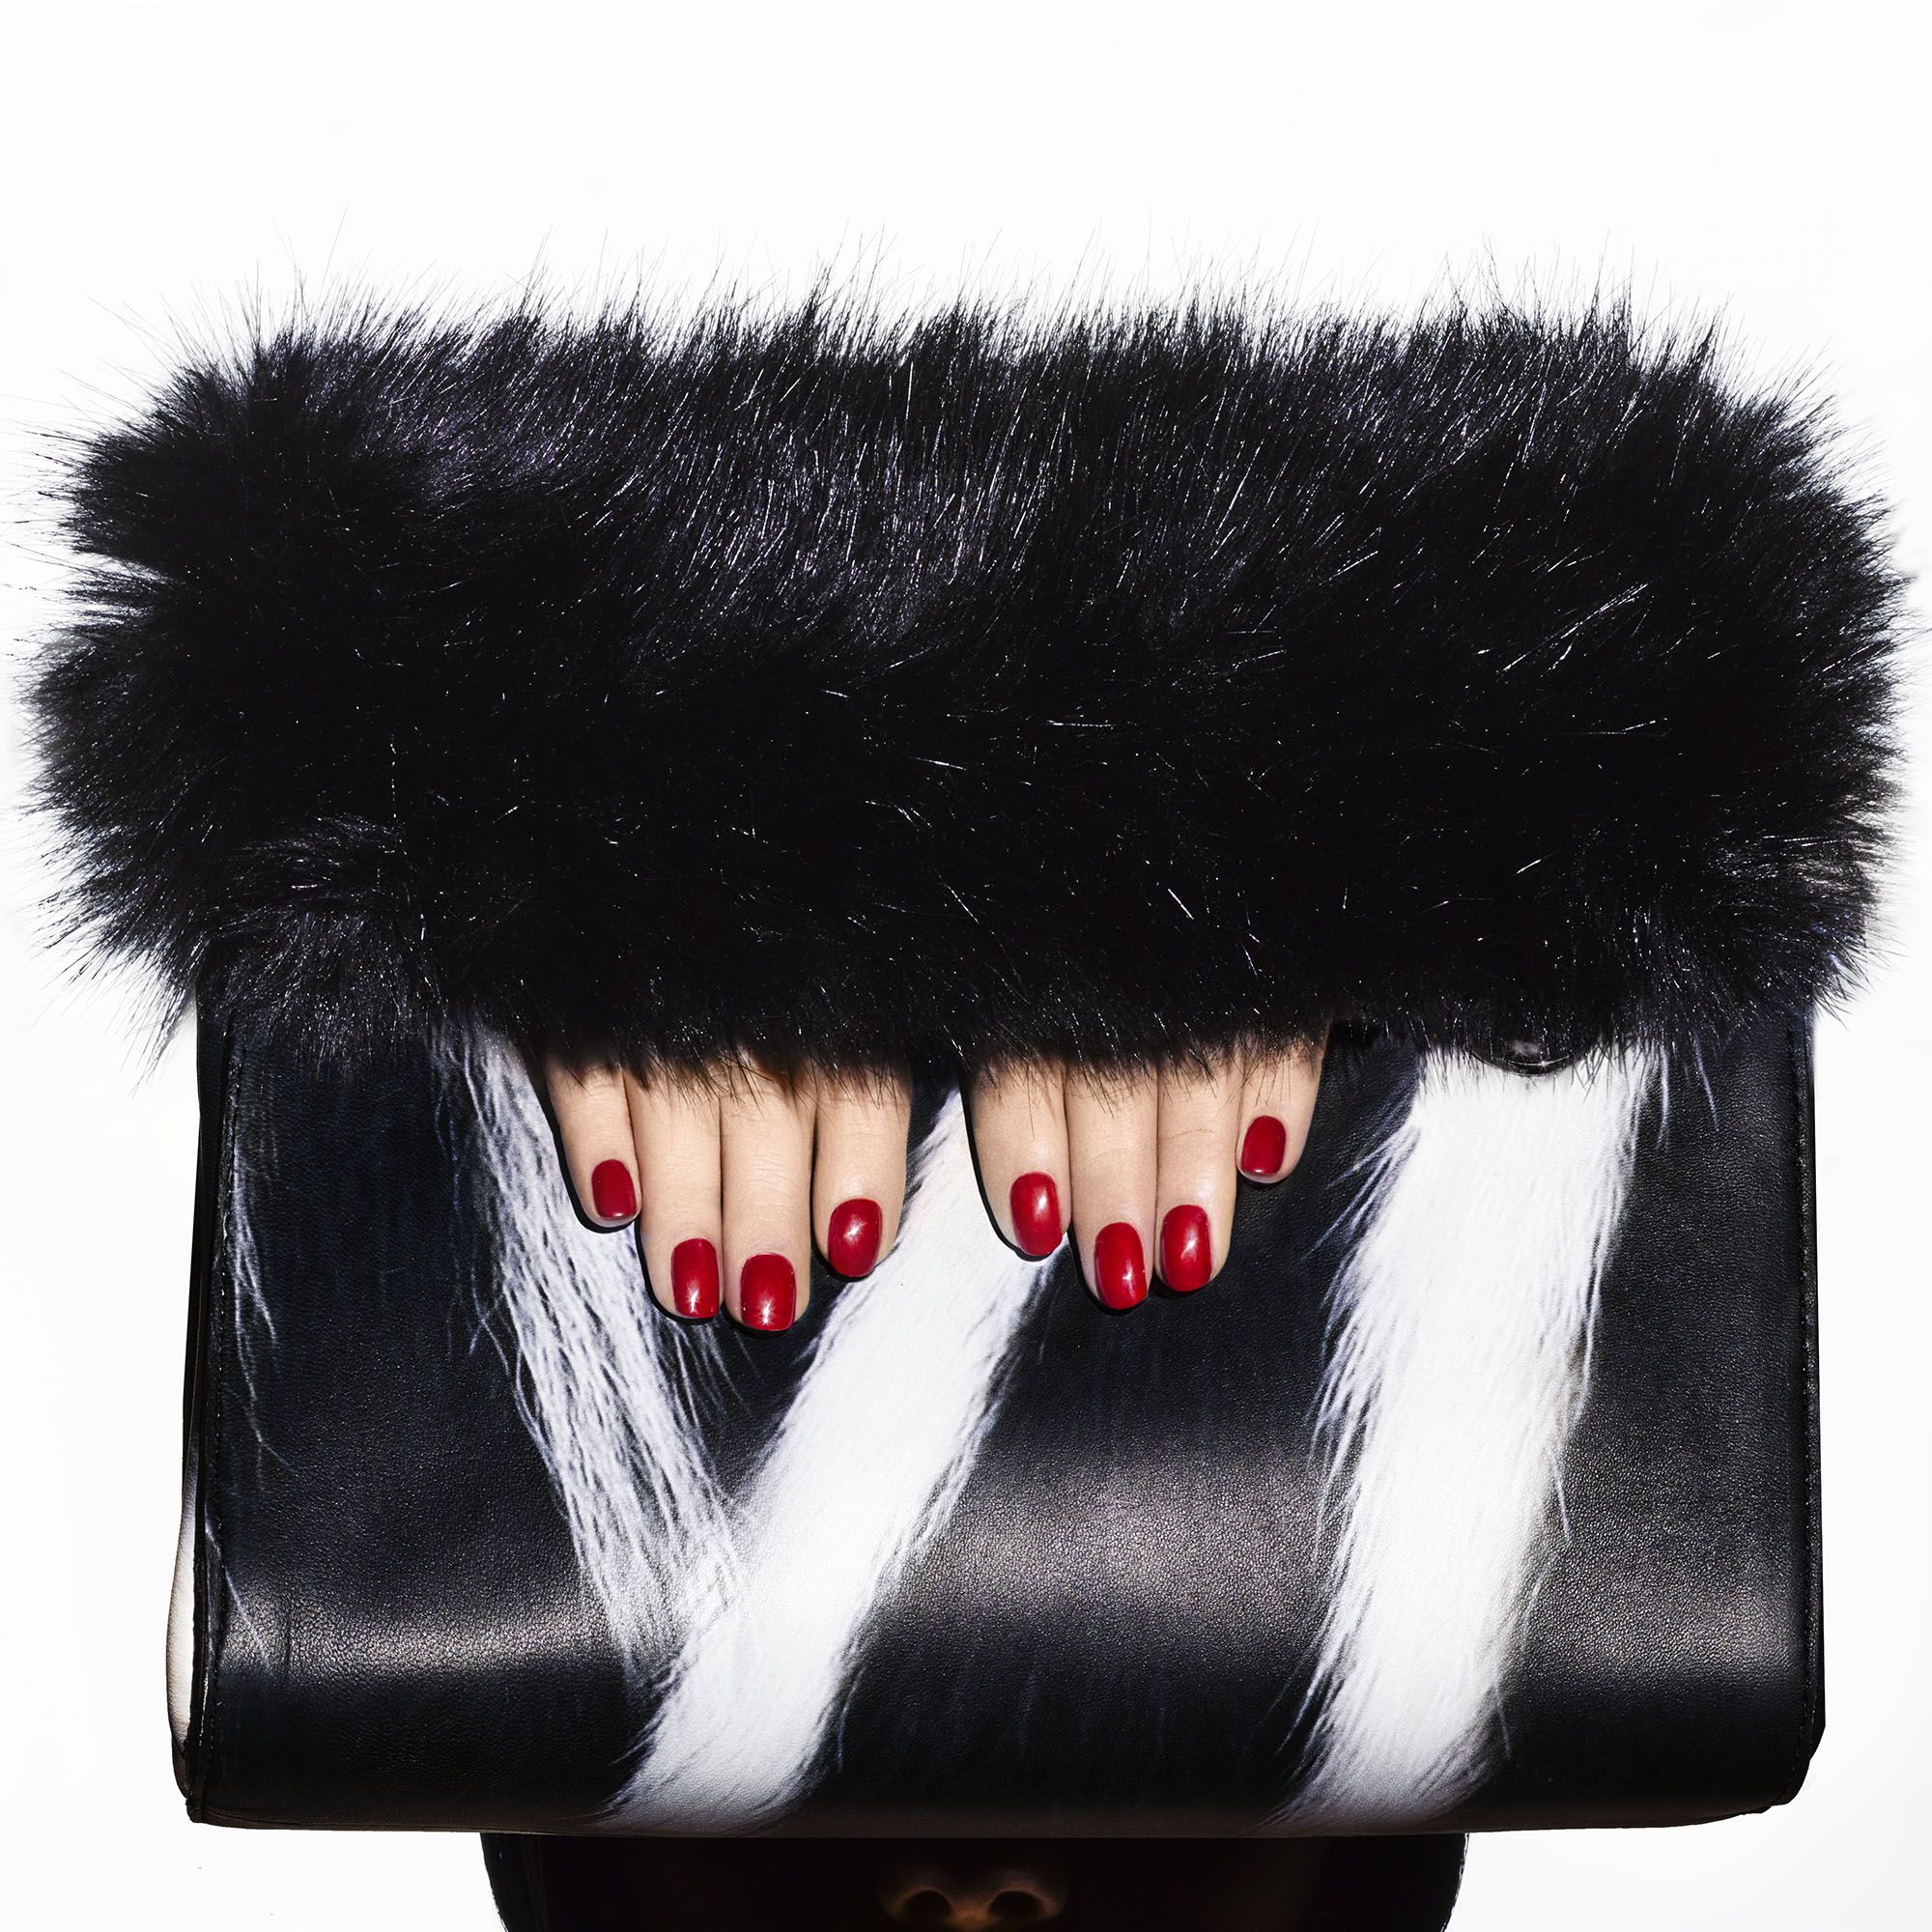 """<p><strong>BEAUTY BAZAAR:</strong><strong> </strong>For red-hot tips, try <a href=""""http://www.chanel.com/en_US/fragrance-beauty/makeup-colour-le-vernis-140404/sku/140409?WT.srch=1&WT.mc_id=FB_PLAMakeup424123889_en_US_&WT.mc_t=sea&gclid=CjwKEAjwqpK8BRD7ua-U0orrgkESJADlN3YB2dQnYei7co92NmdATTyy0HIm58vLjs4ncuZbibfuLxoCgcnw_wcB"""" target=""""_blank"""">Chanel Le Vernis Nail Colour</a> in Rouge Essentiel ($28).</p><p><strong>Calvin Klein Collection</strong> clutch, $1,995, 212-292-9000.</p>"""